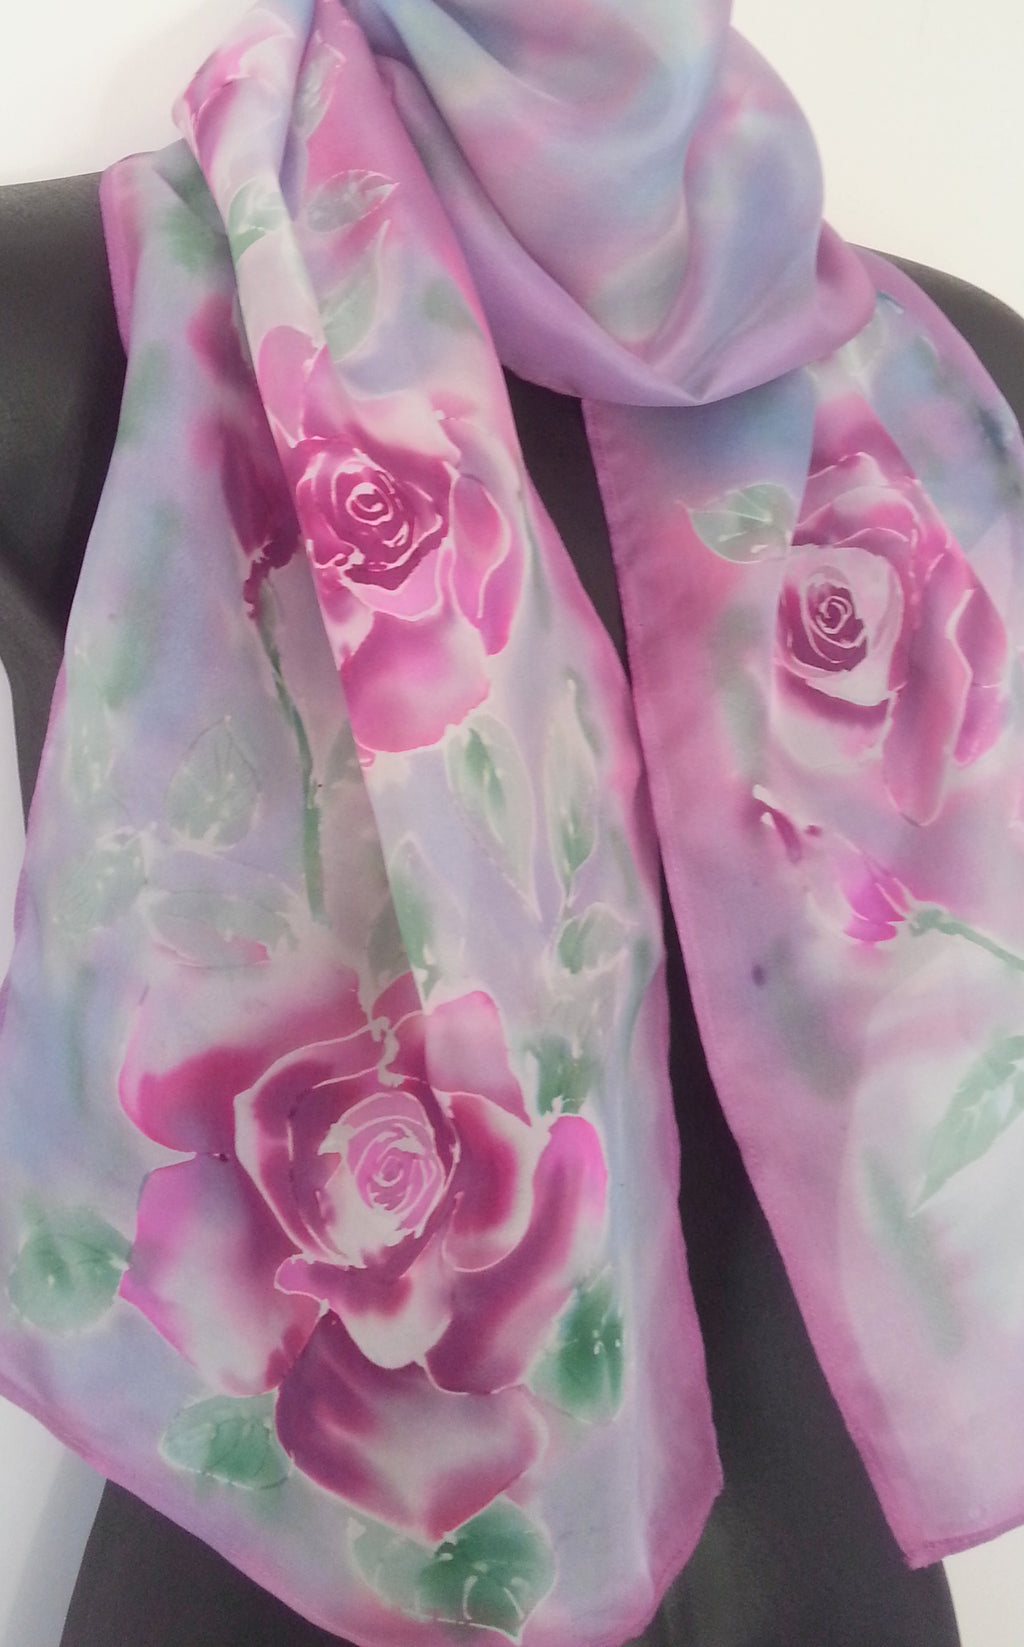 Rose Silk Scarf - Hand painted Silk Scarf - Satherley Silks NZ